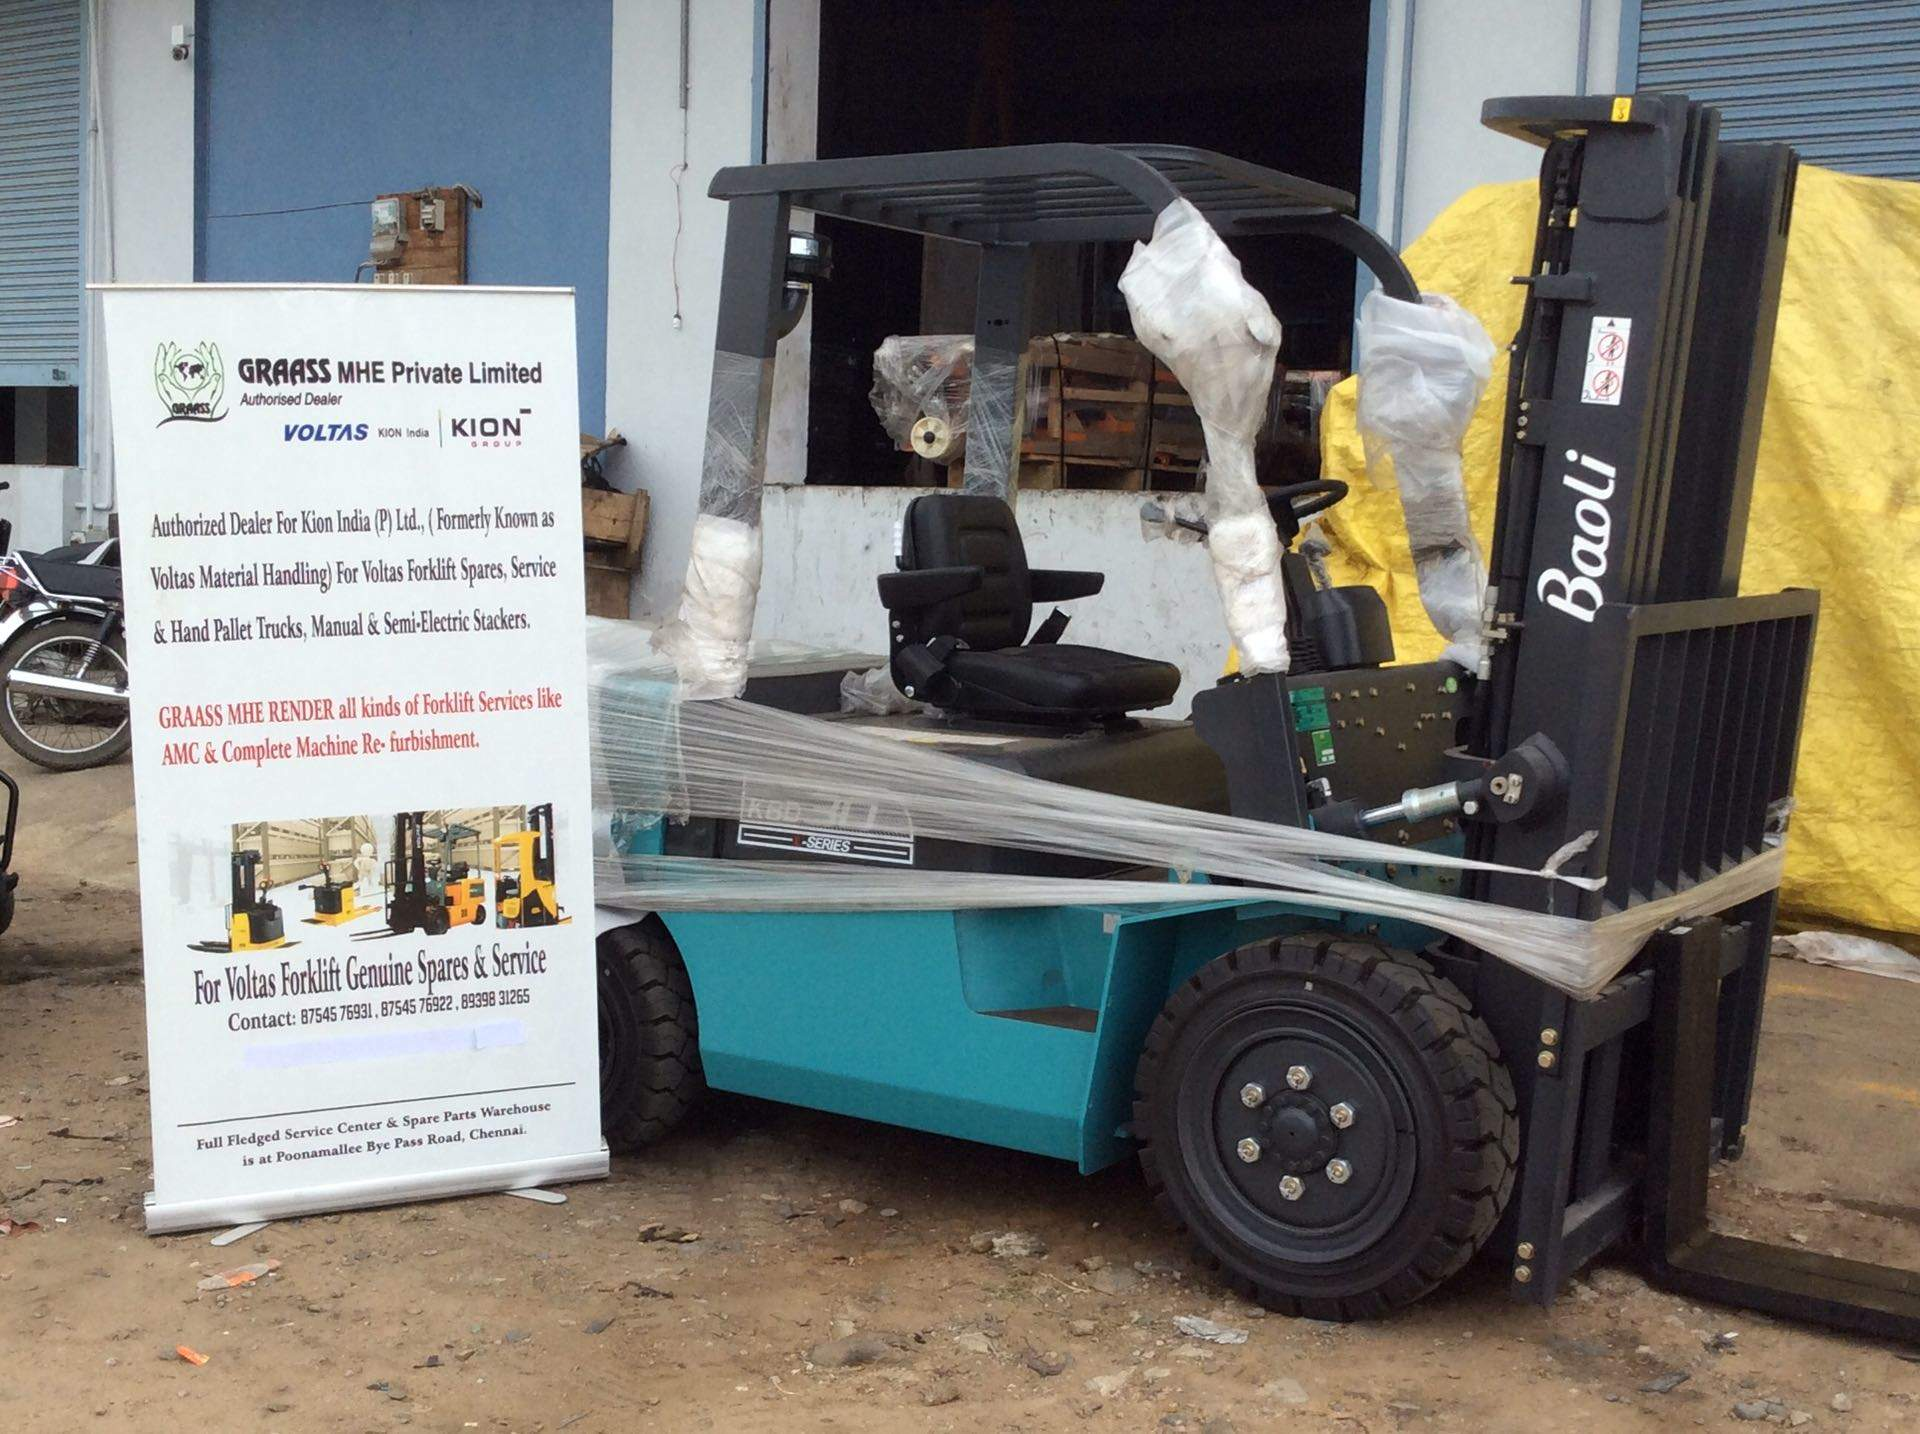 Top 50 Forklift Repair & Services in Chennai - Best Forklift